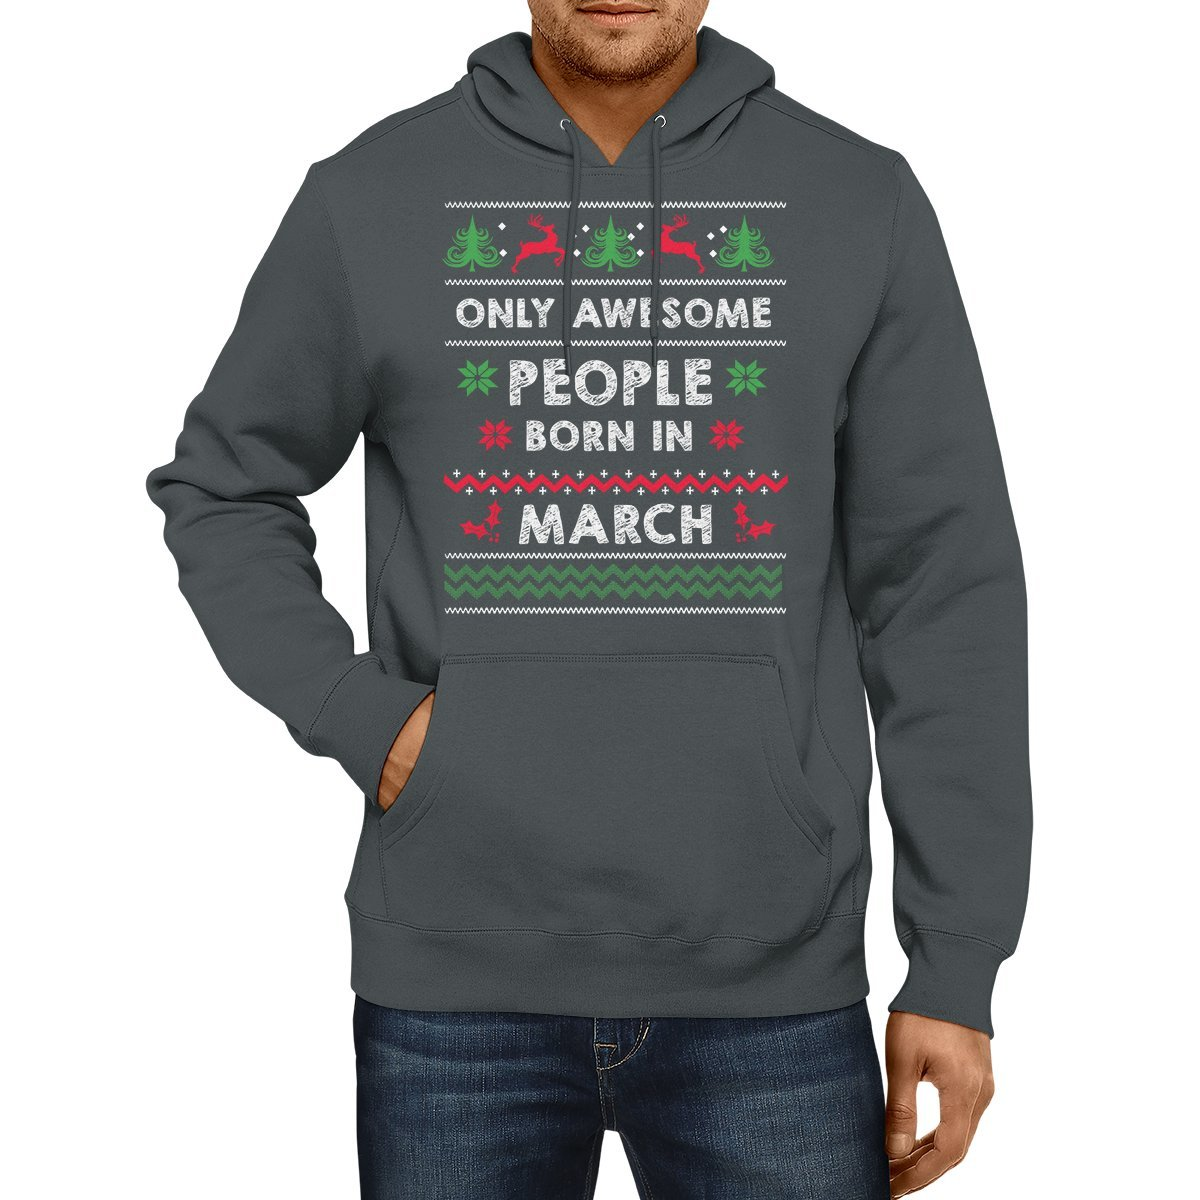 Dolphintee Only Awesome People Born In March Hoodies For whose Is Birthday In March